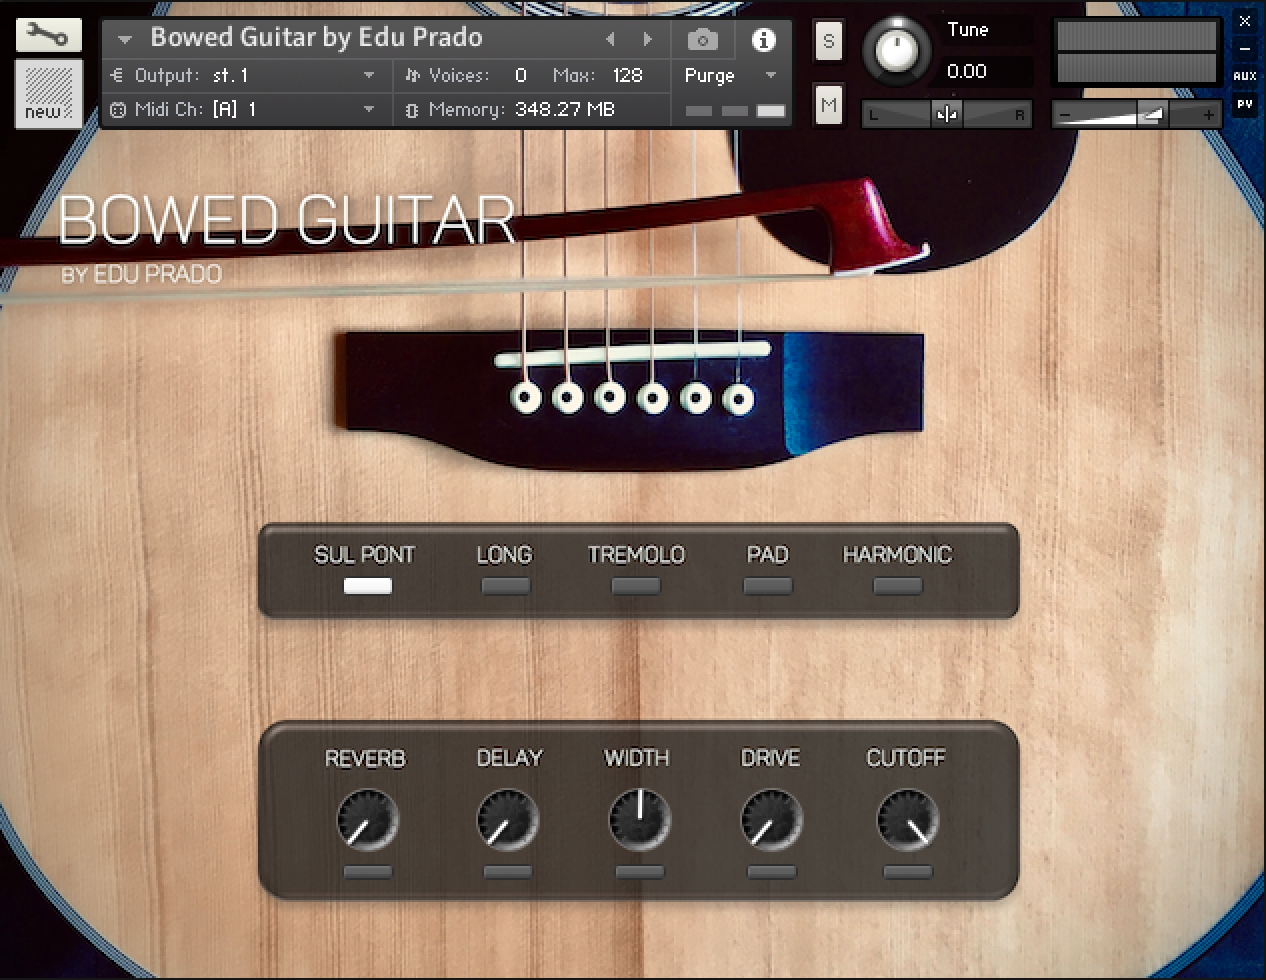 Bowed Guitar by Edu Prado - user interface screenshot